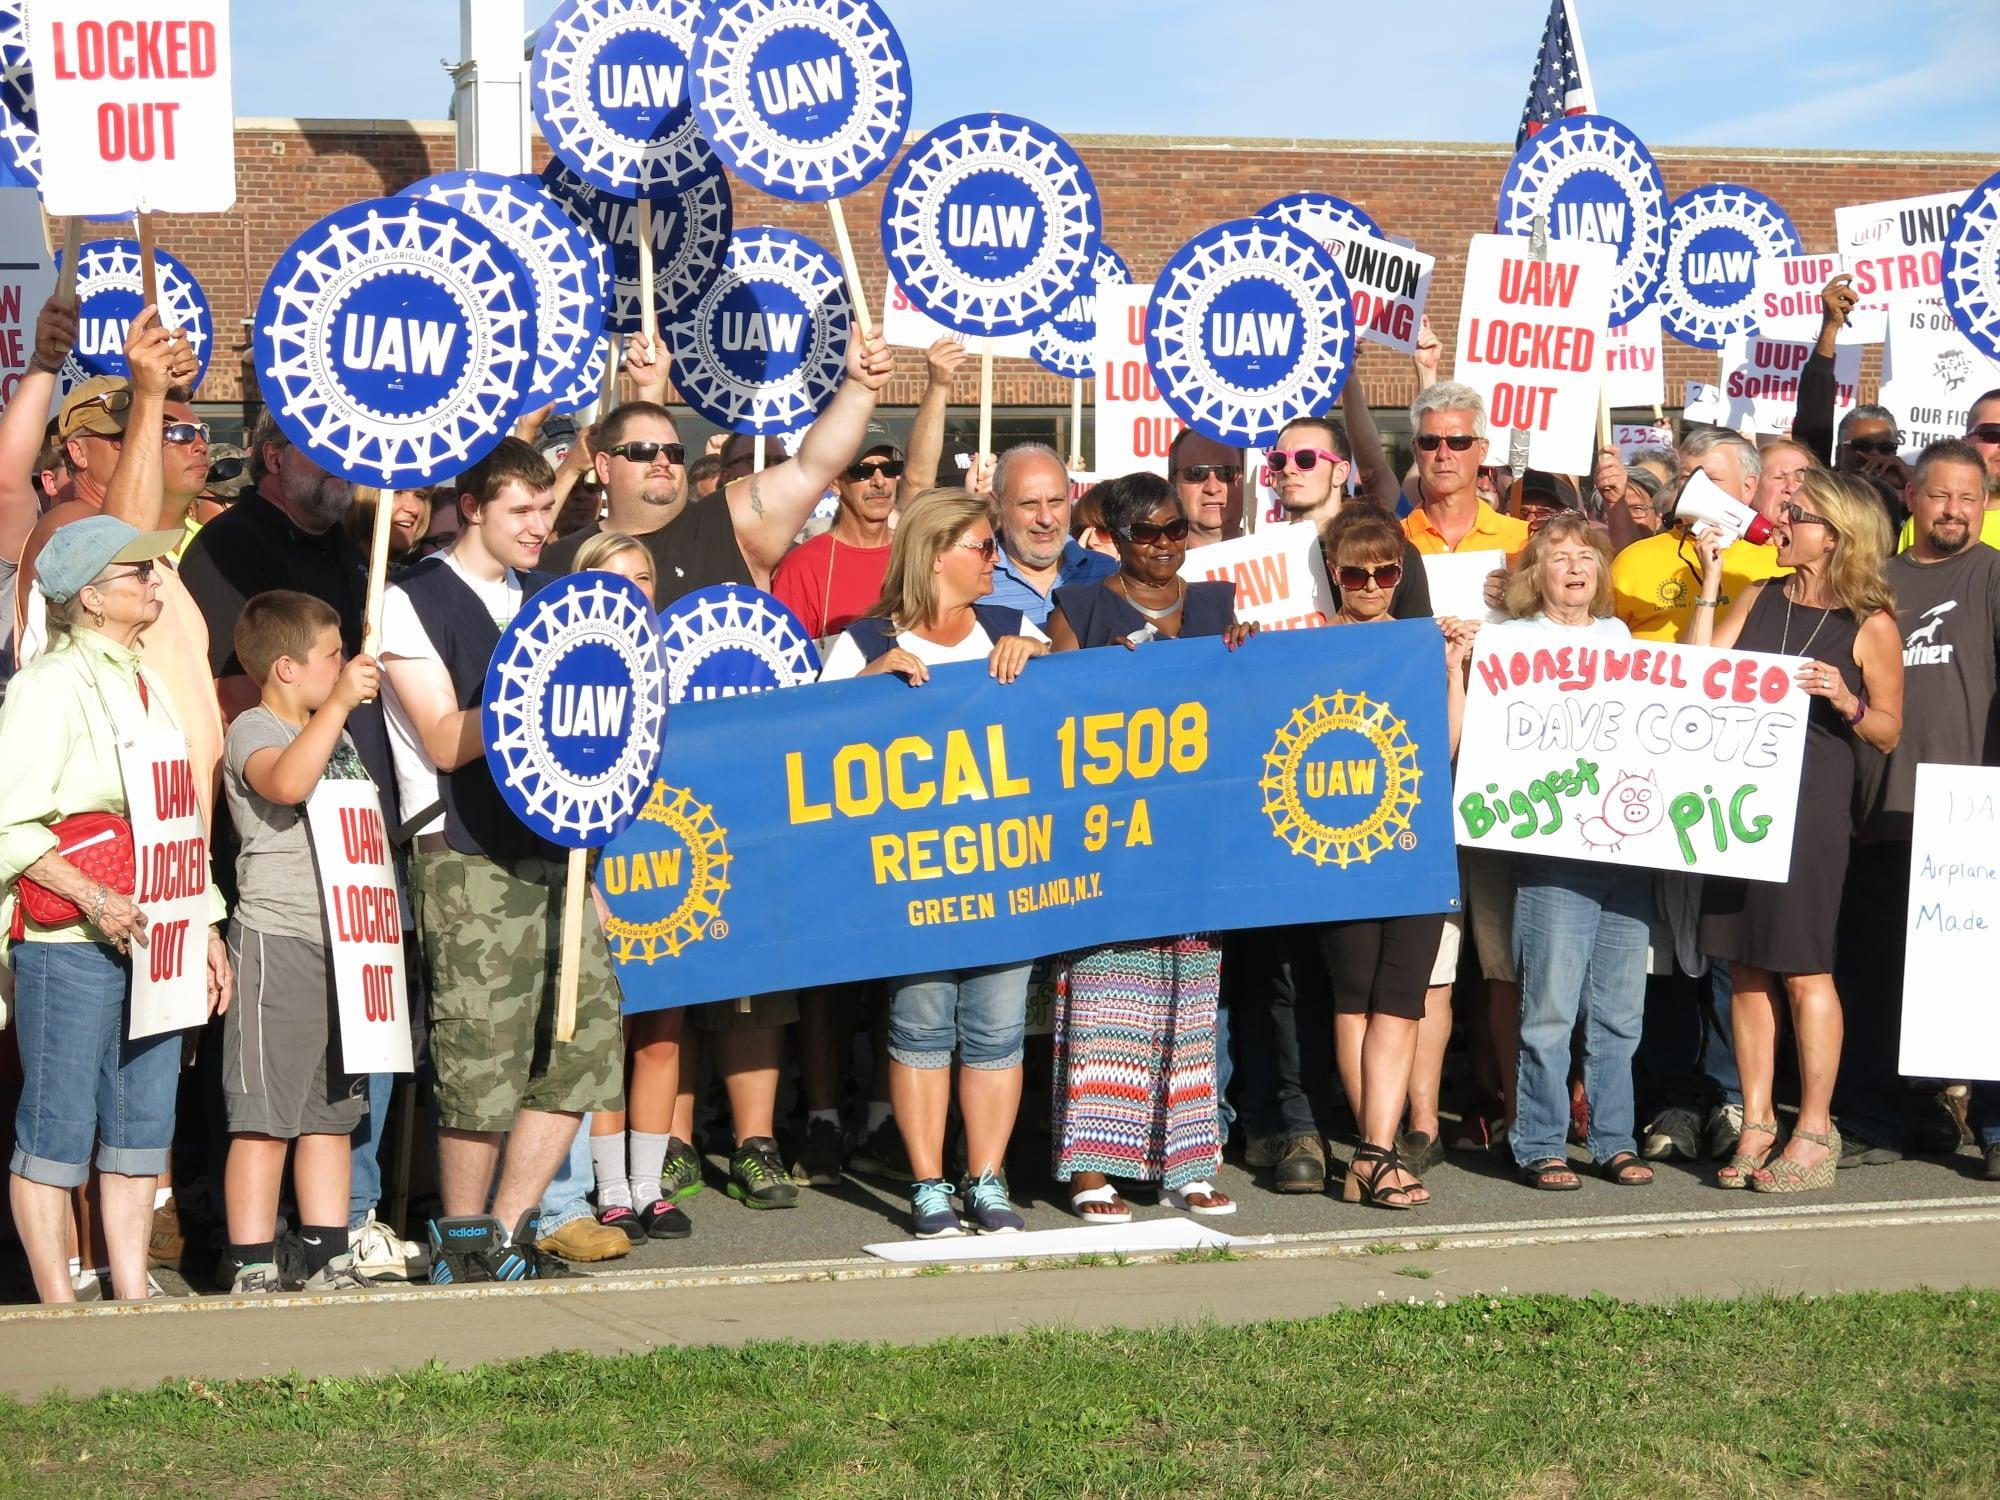 UAW Local 1508 Rally